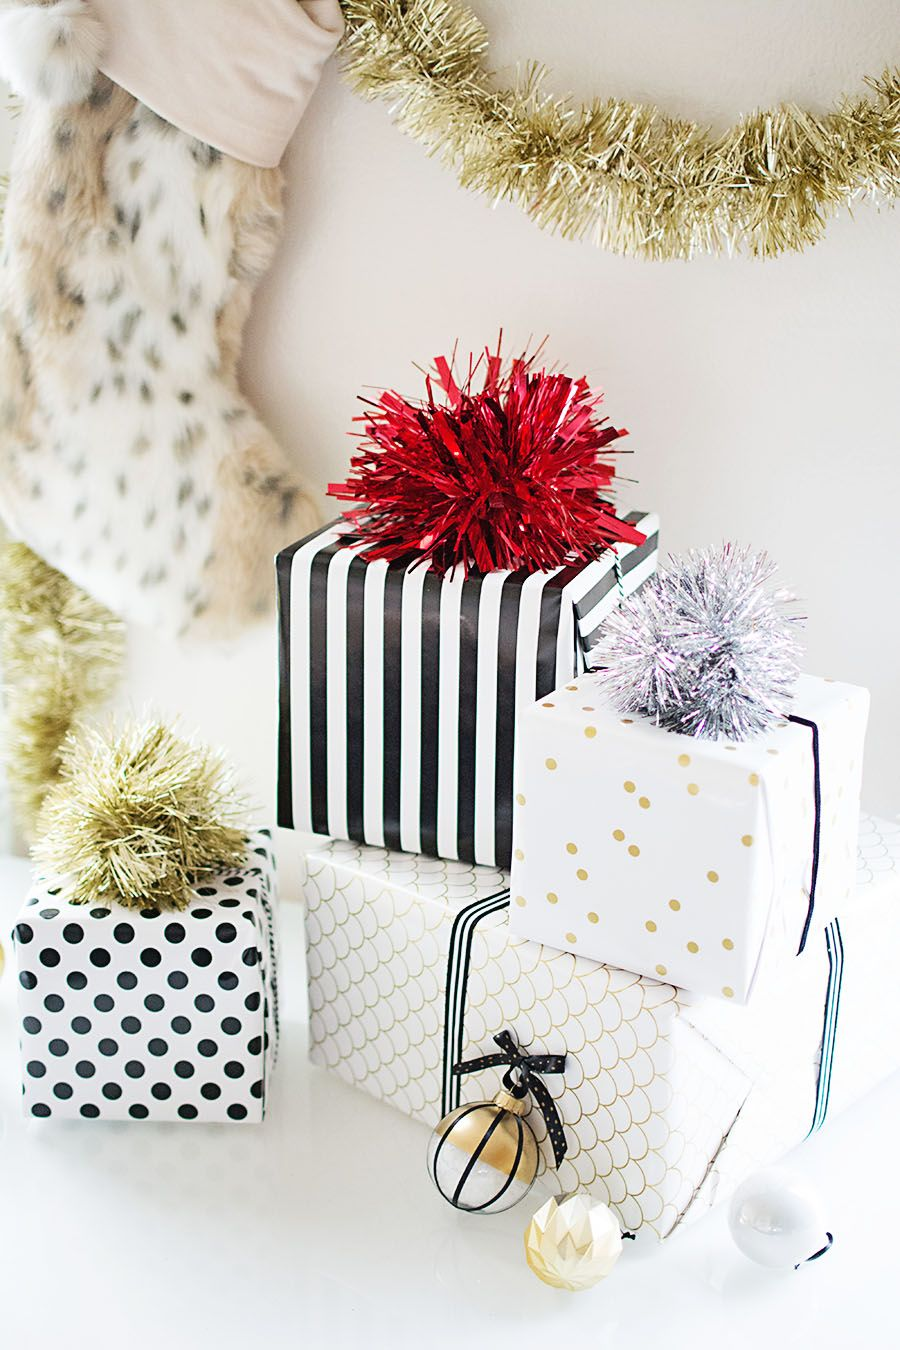 DIY Tinsel Pom Pom Gift Topper | DIY Projects | Pinterest | Gift bow ...